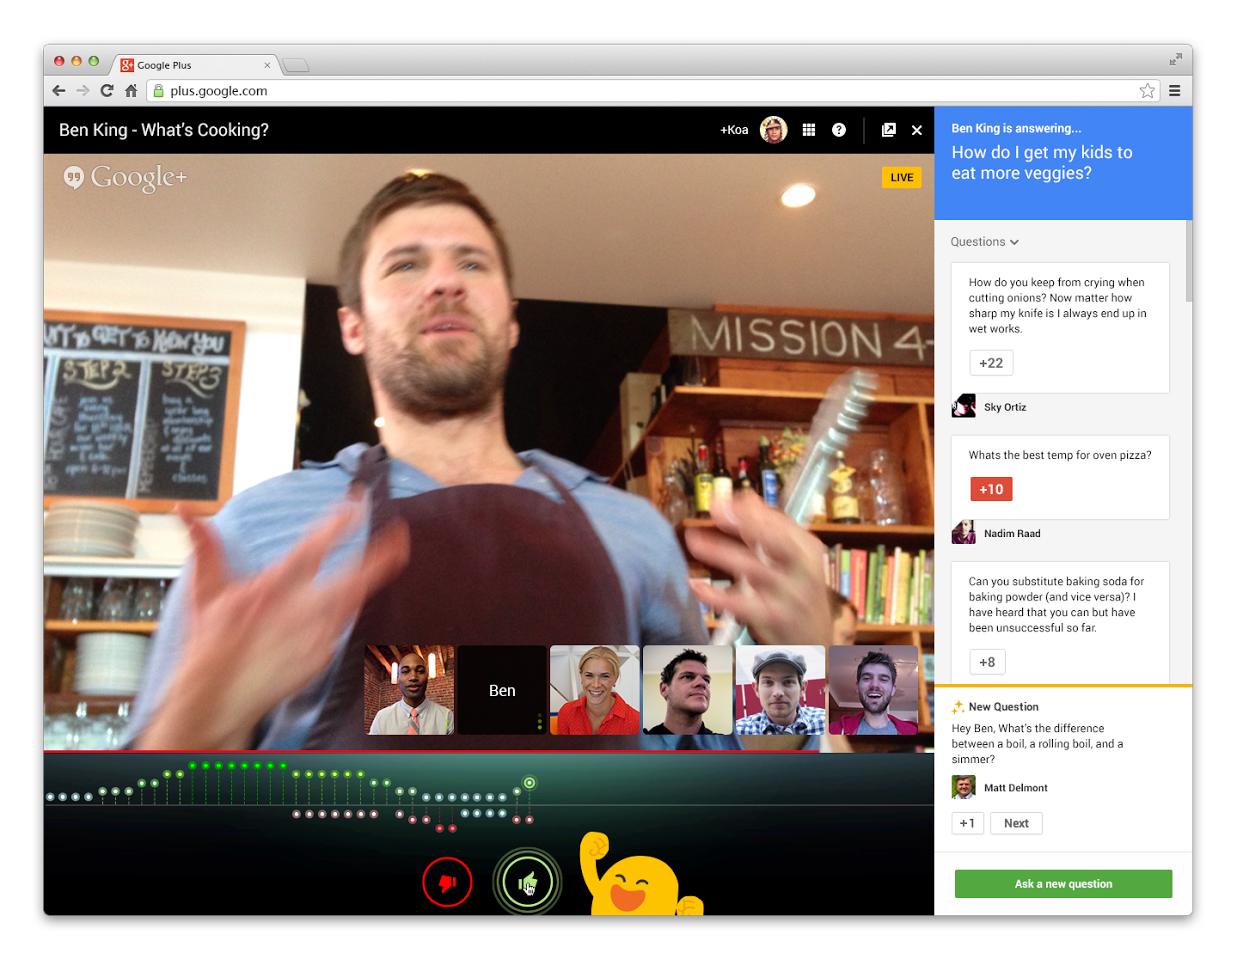 A Hangouts on Air session with Q&A enabled.